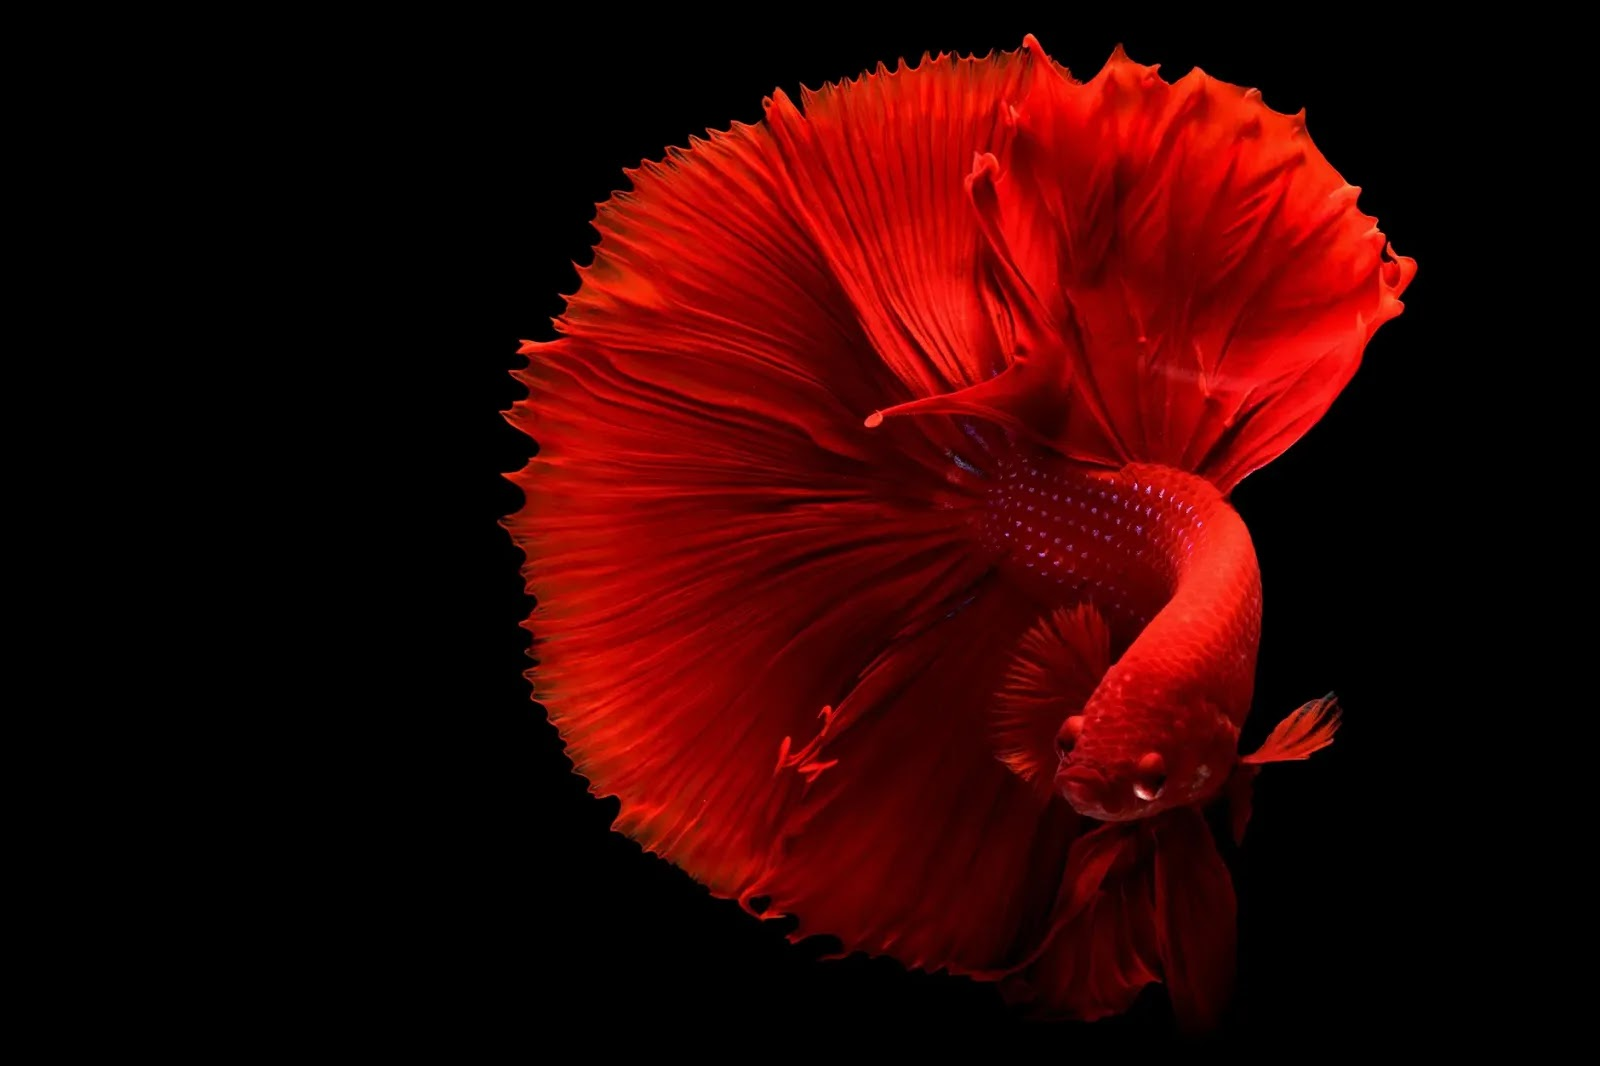 Pros and Cons of Buying a Betta Fish